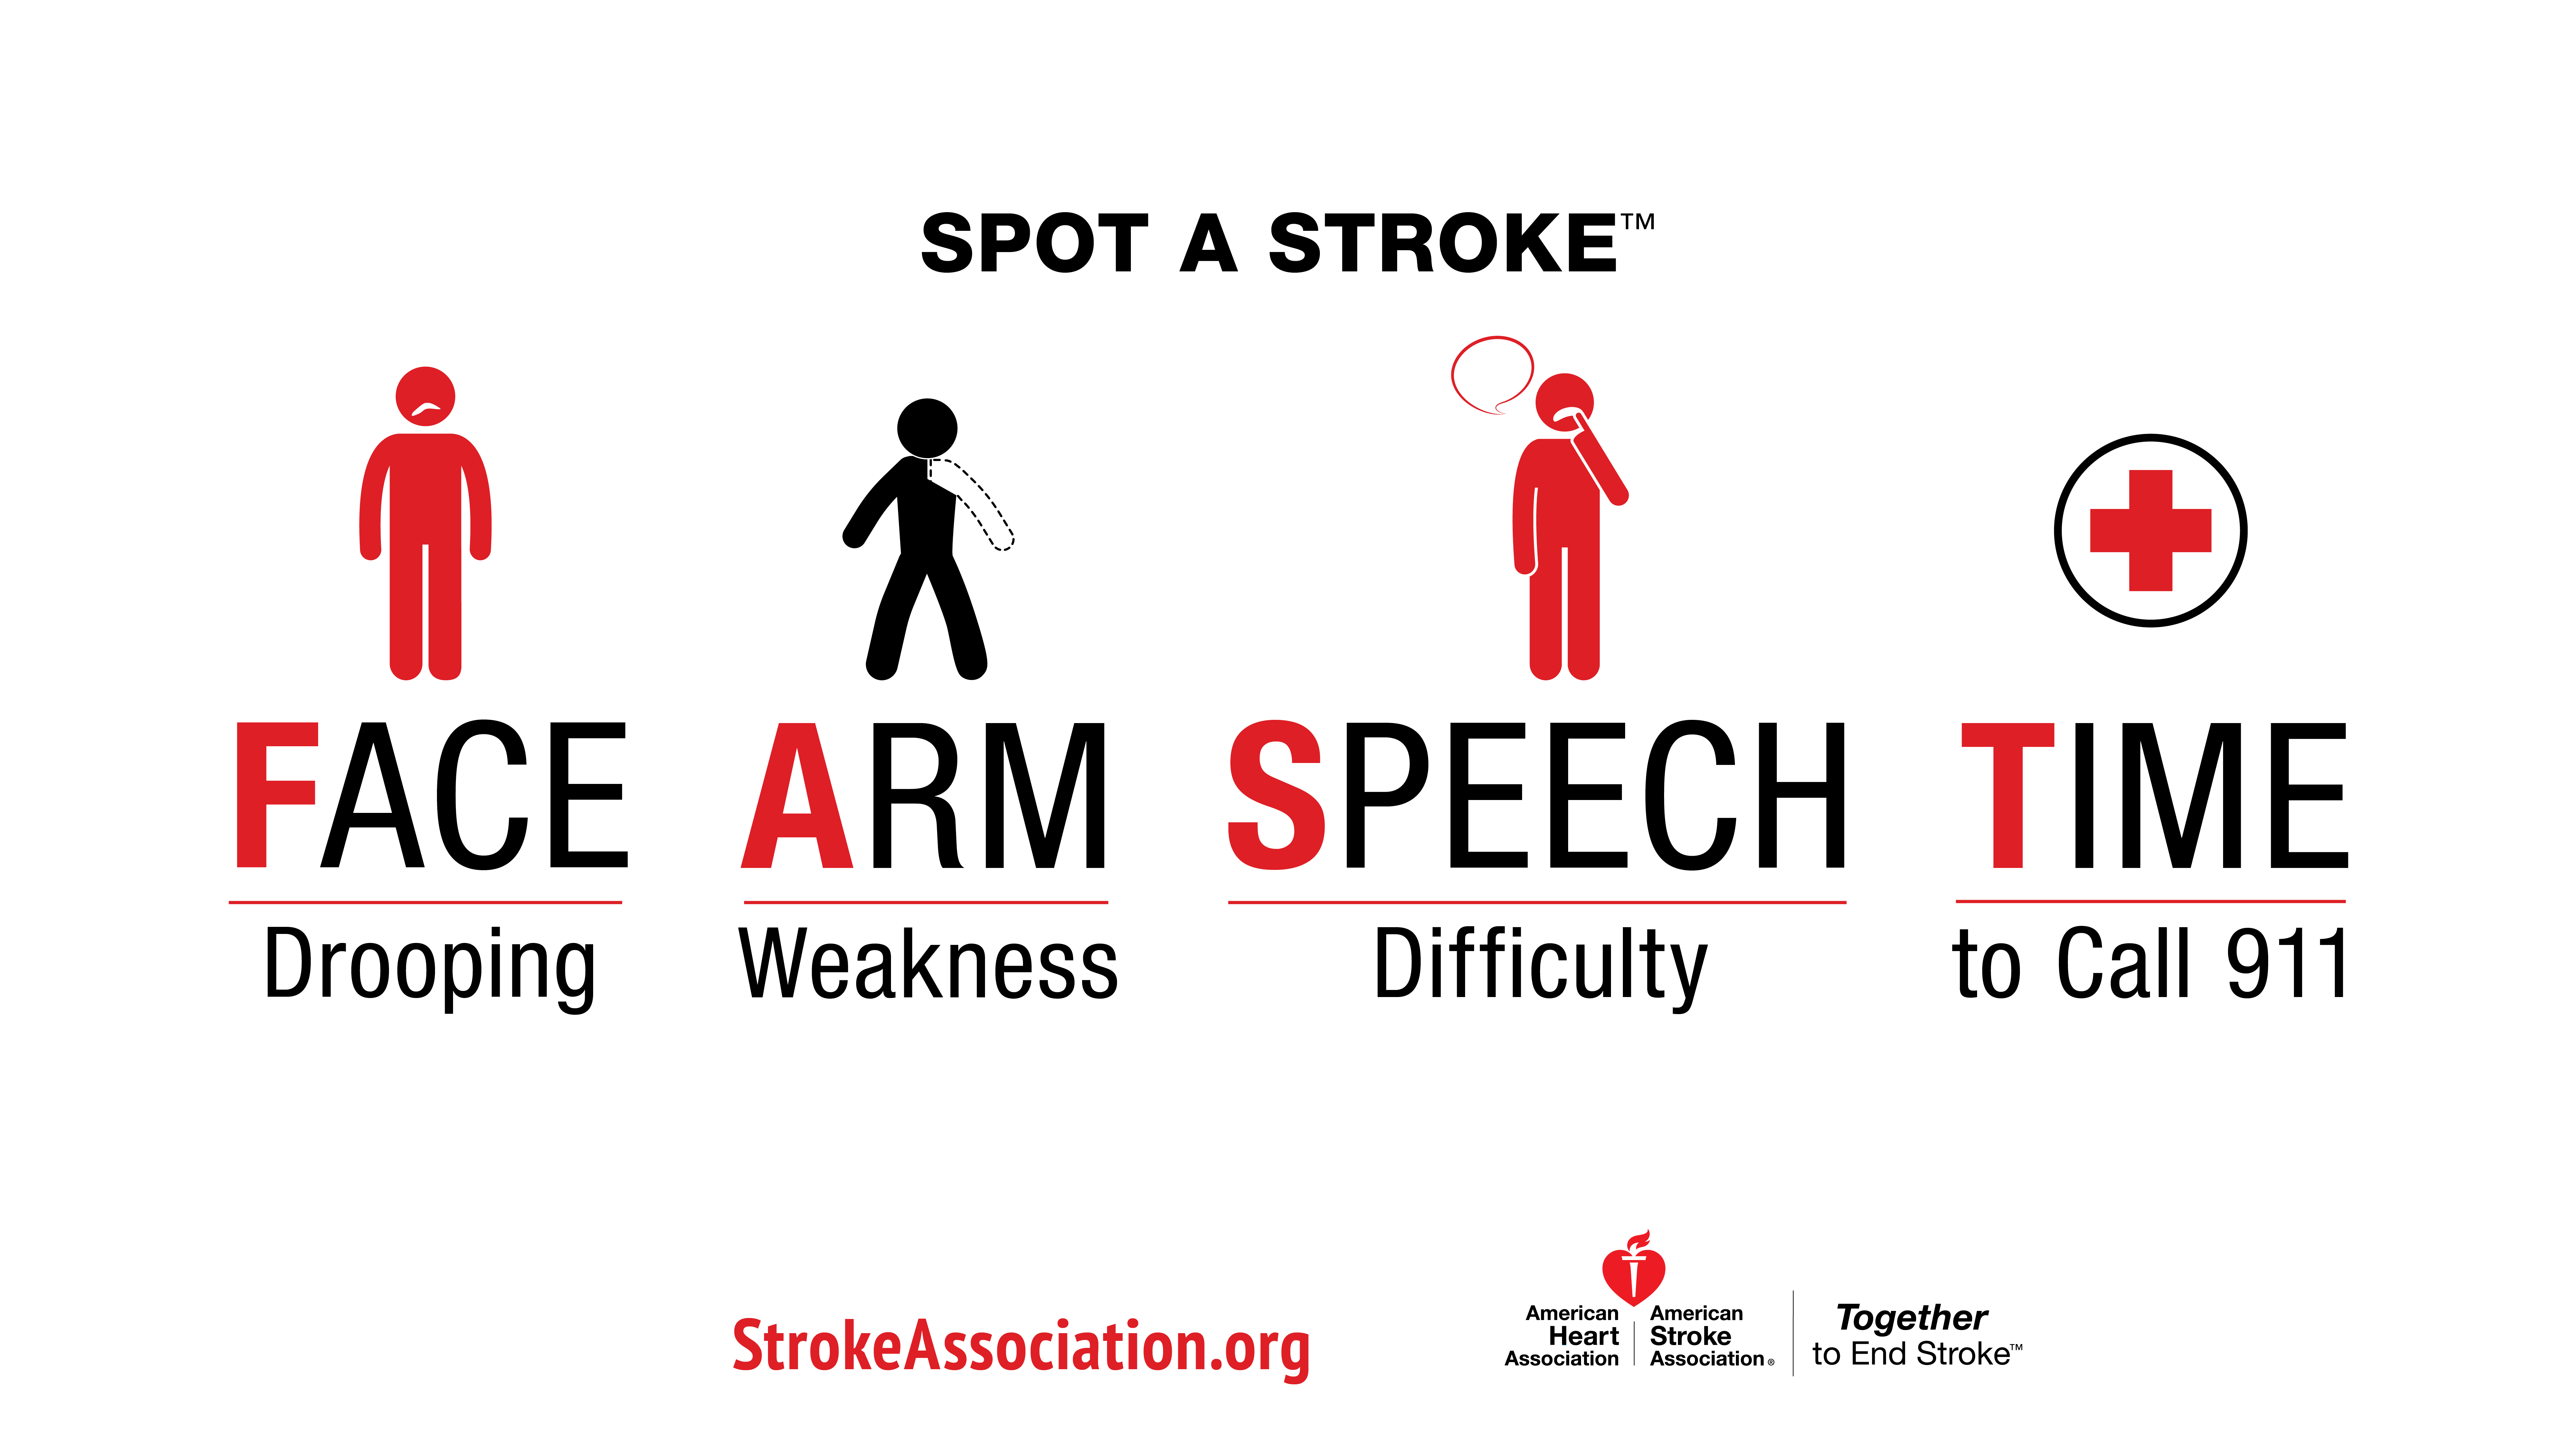 FAST infographic for spotting a stroke